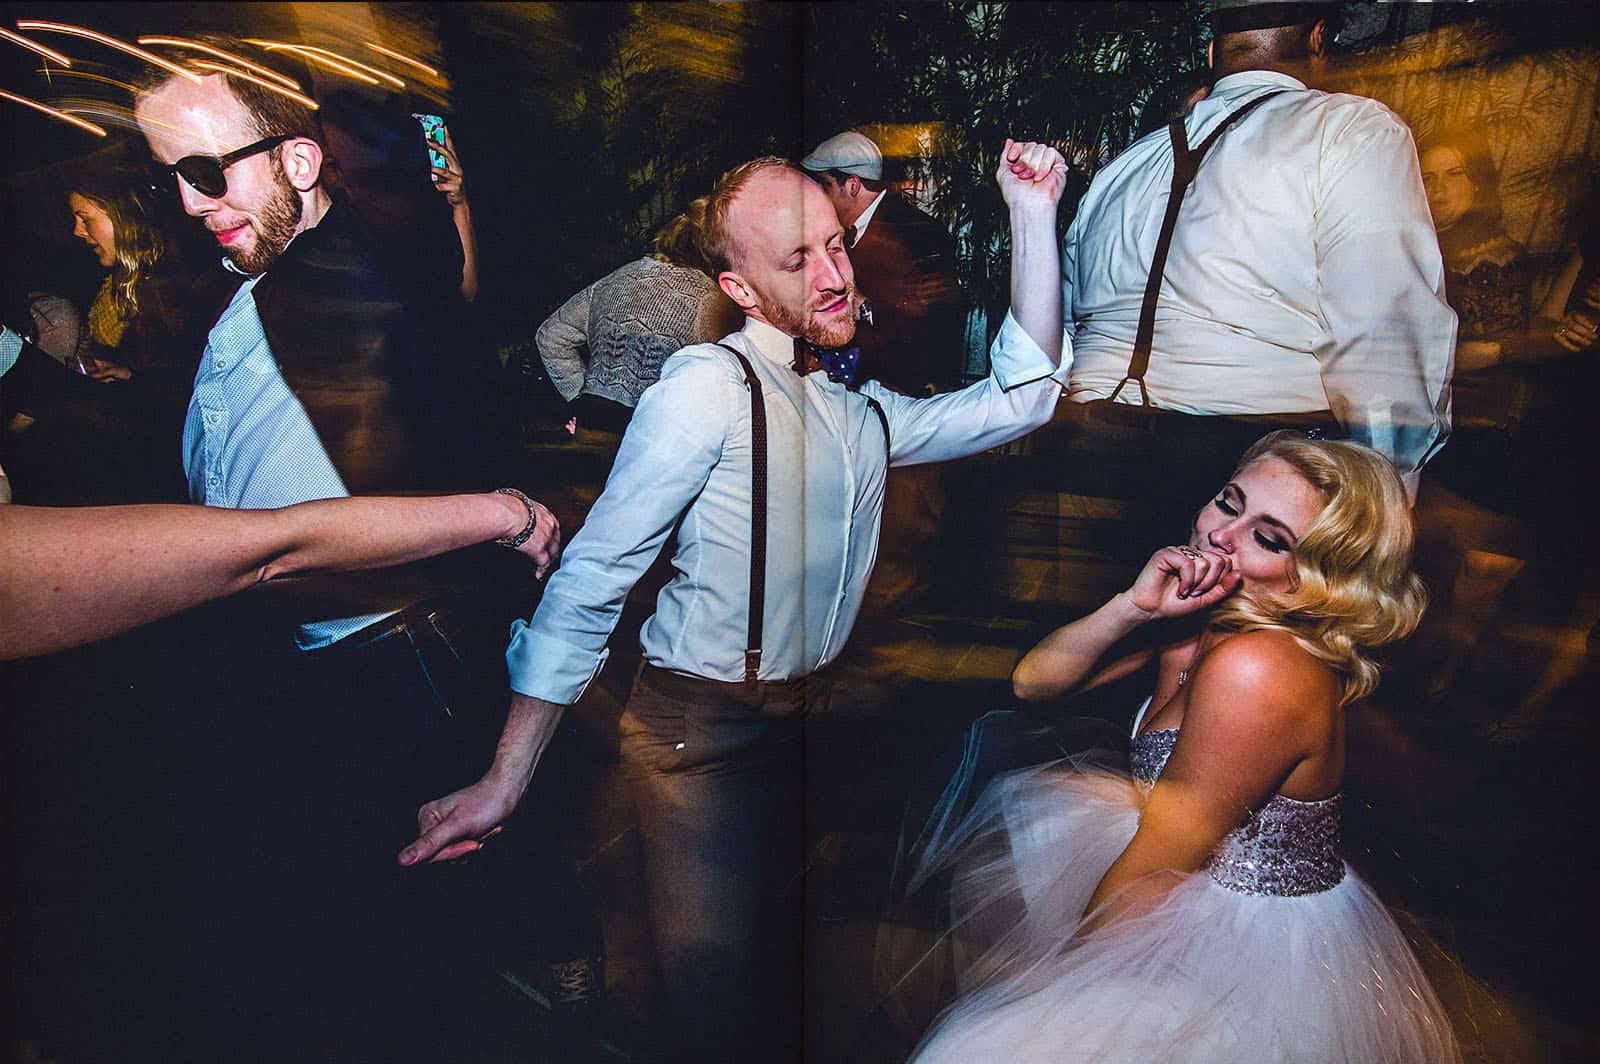 people dancing wild in new orleans wedding